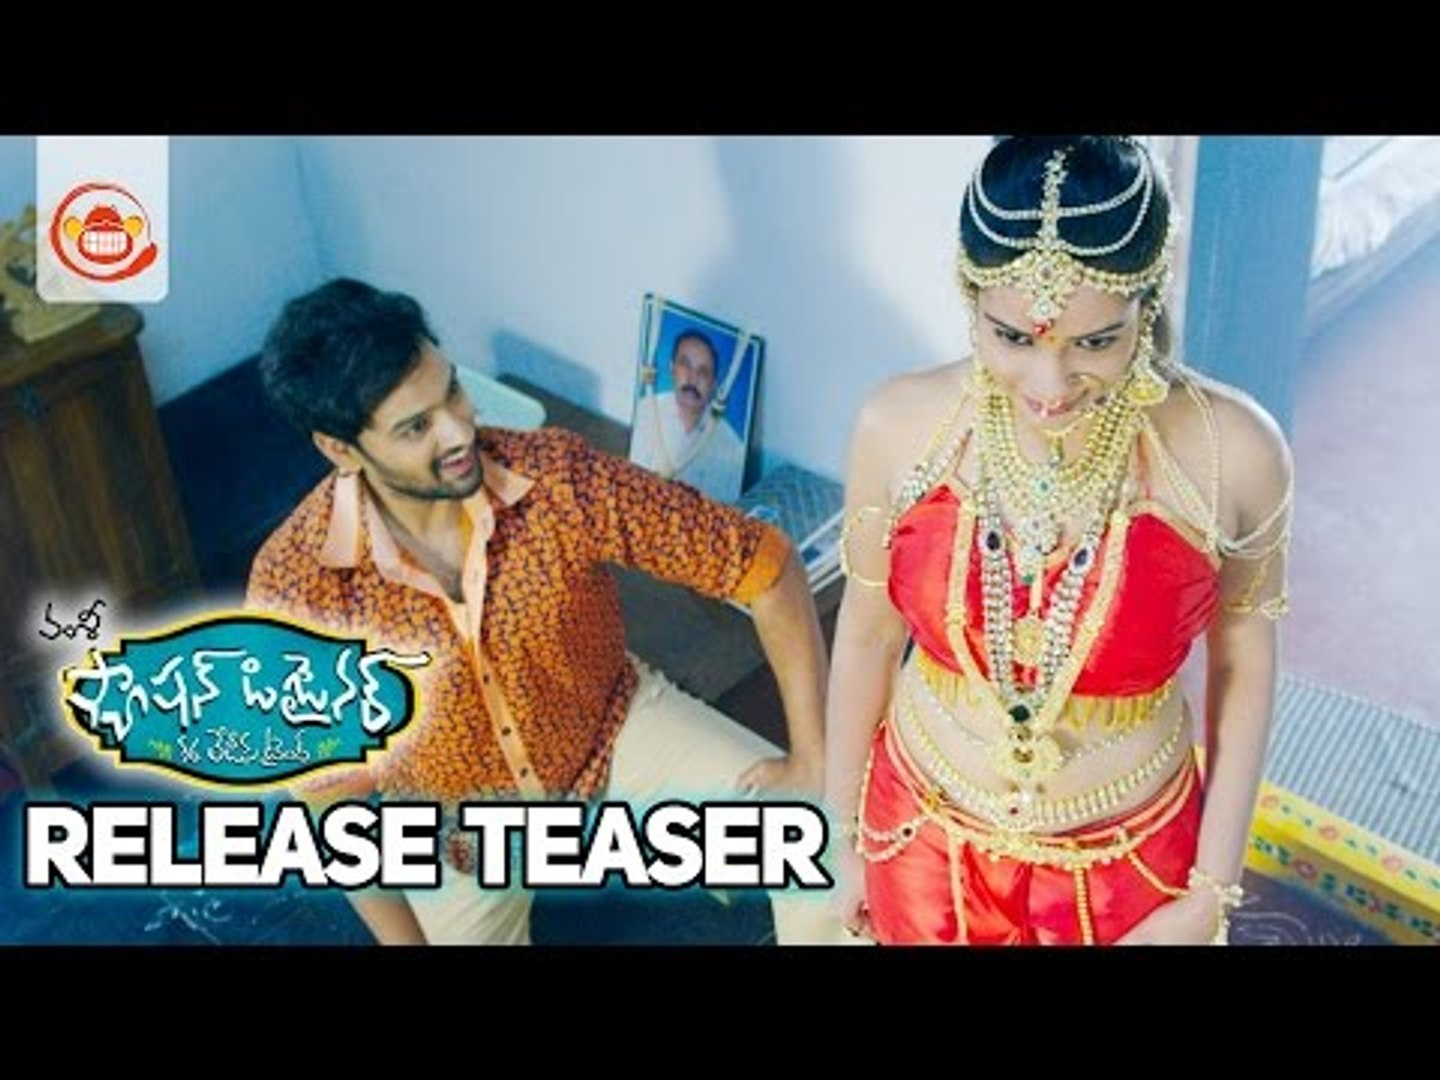 Fashion Designer S O Ladies Tailor Release Teaser Sumanth Ashwin Anisha Ambrose Manali Rathod Video Dailymotion